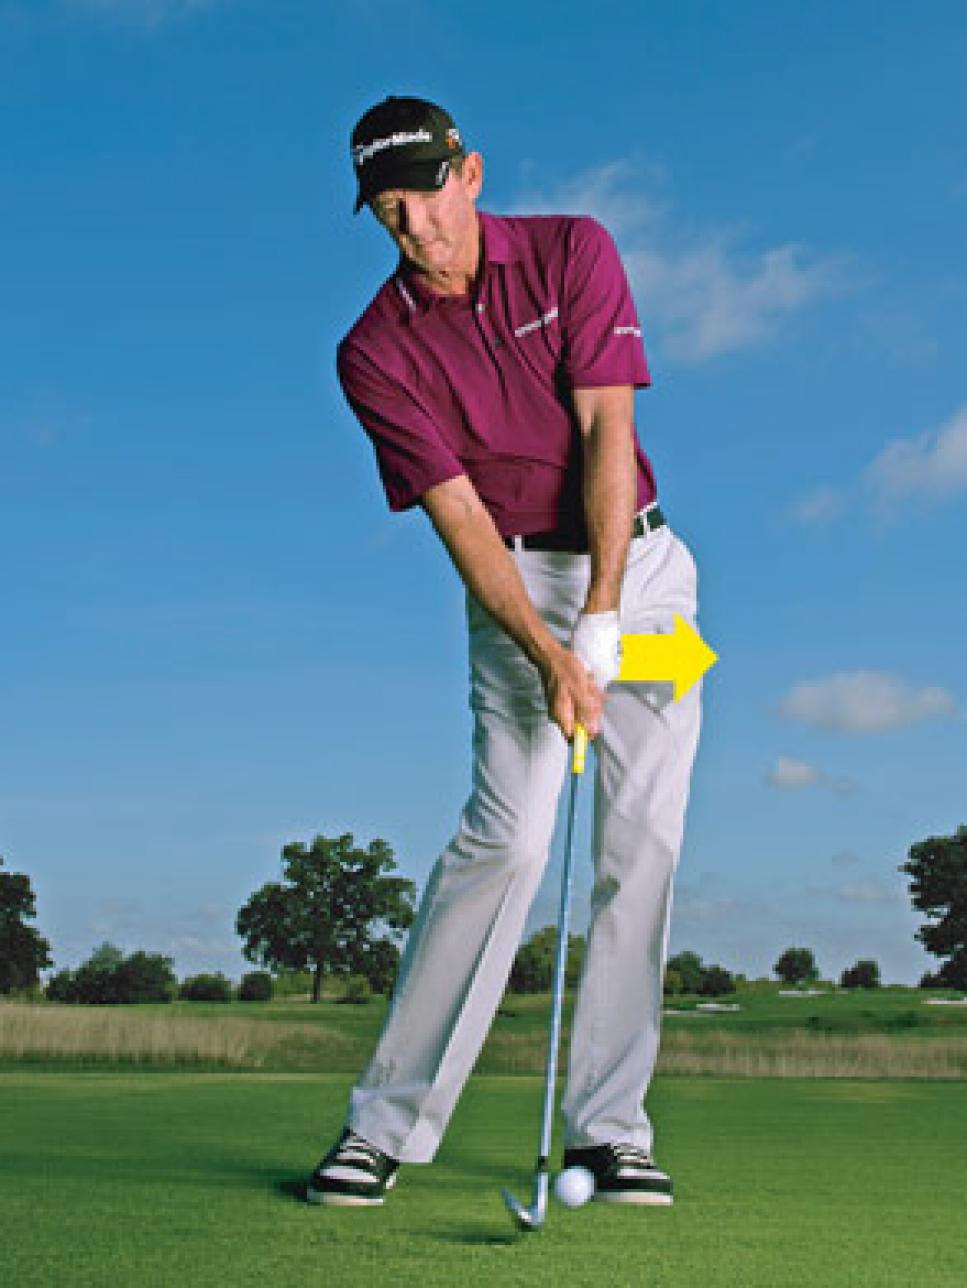 instruction-2013-11-inar01-hank-haney-solid-irons.jpg